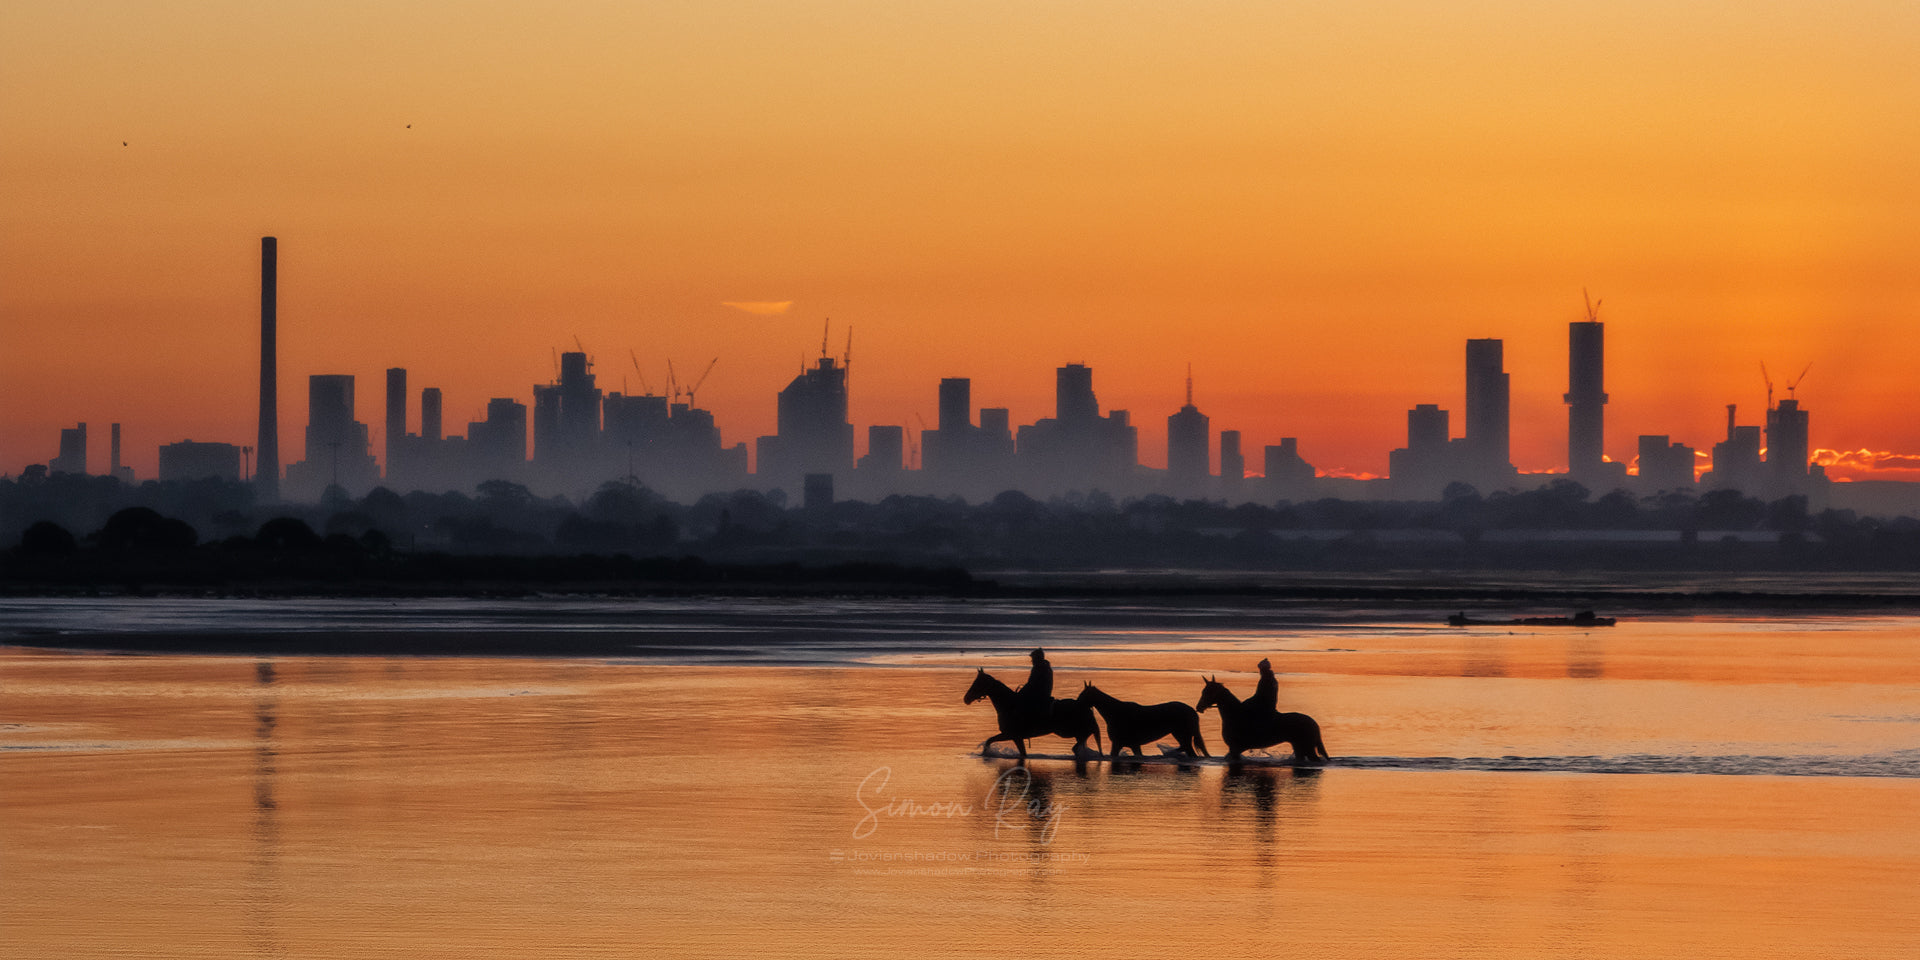 Horse riders on Altona Dog Beach